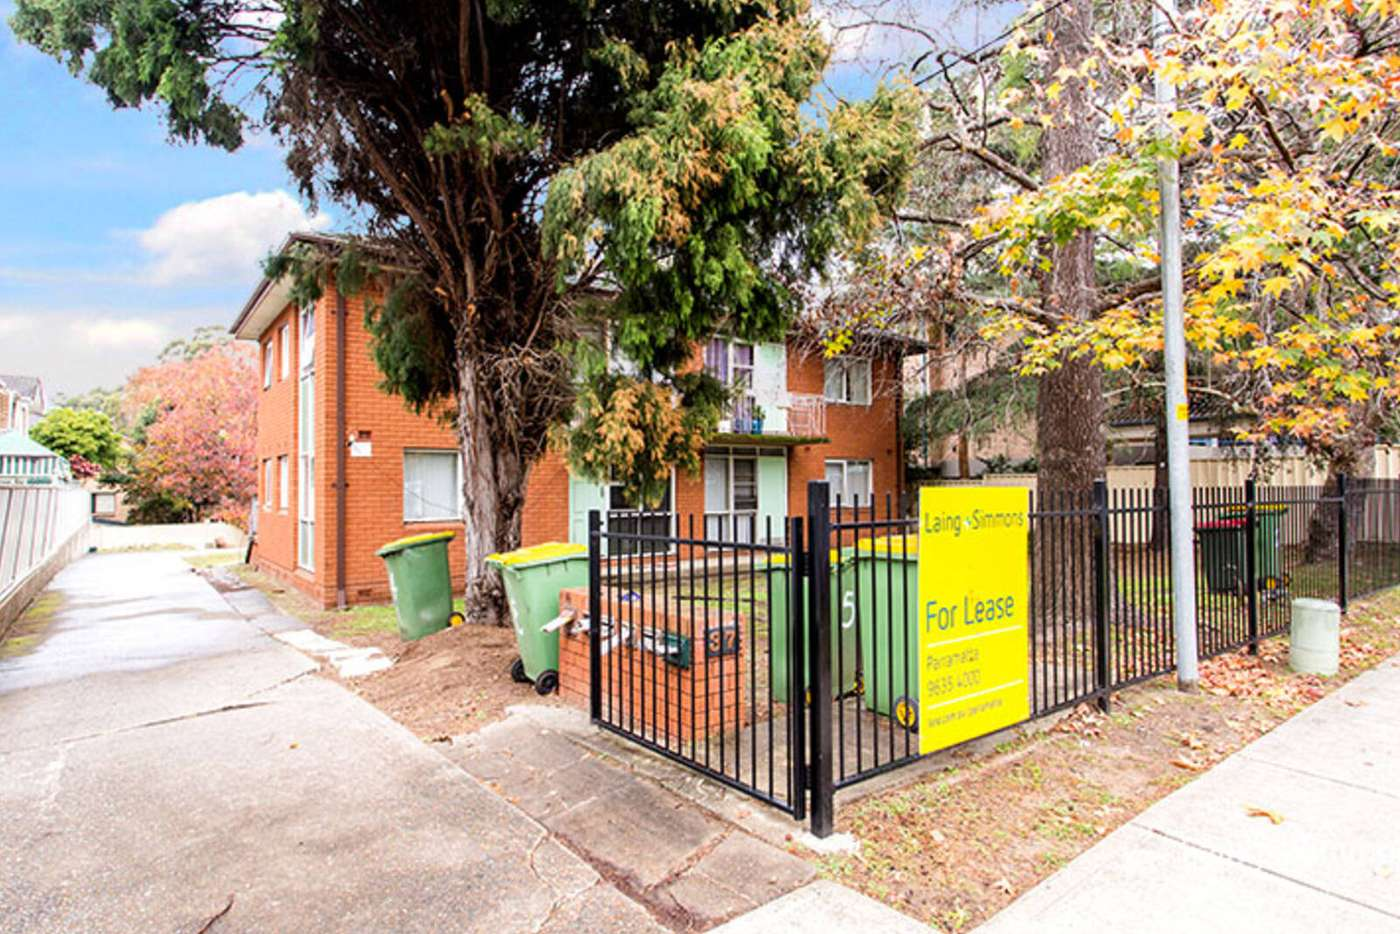 Main view of Homely unit listing, 4/37 Isabella Street, North Parramatta NSW 2151